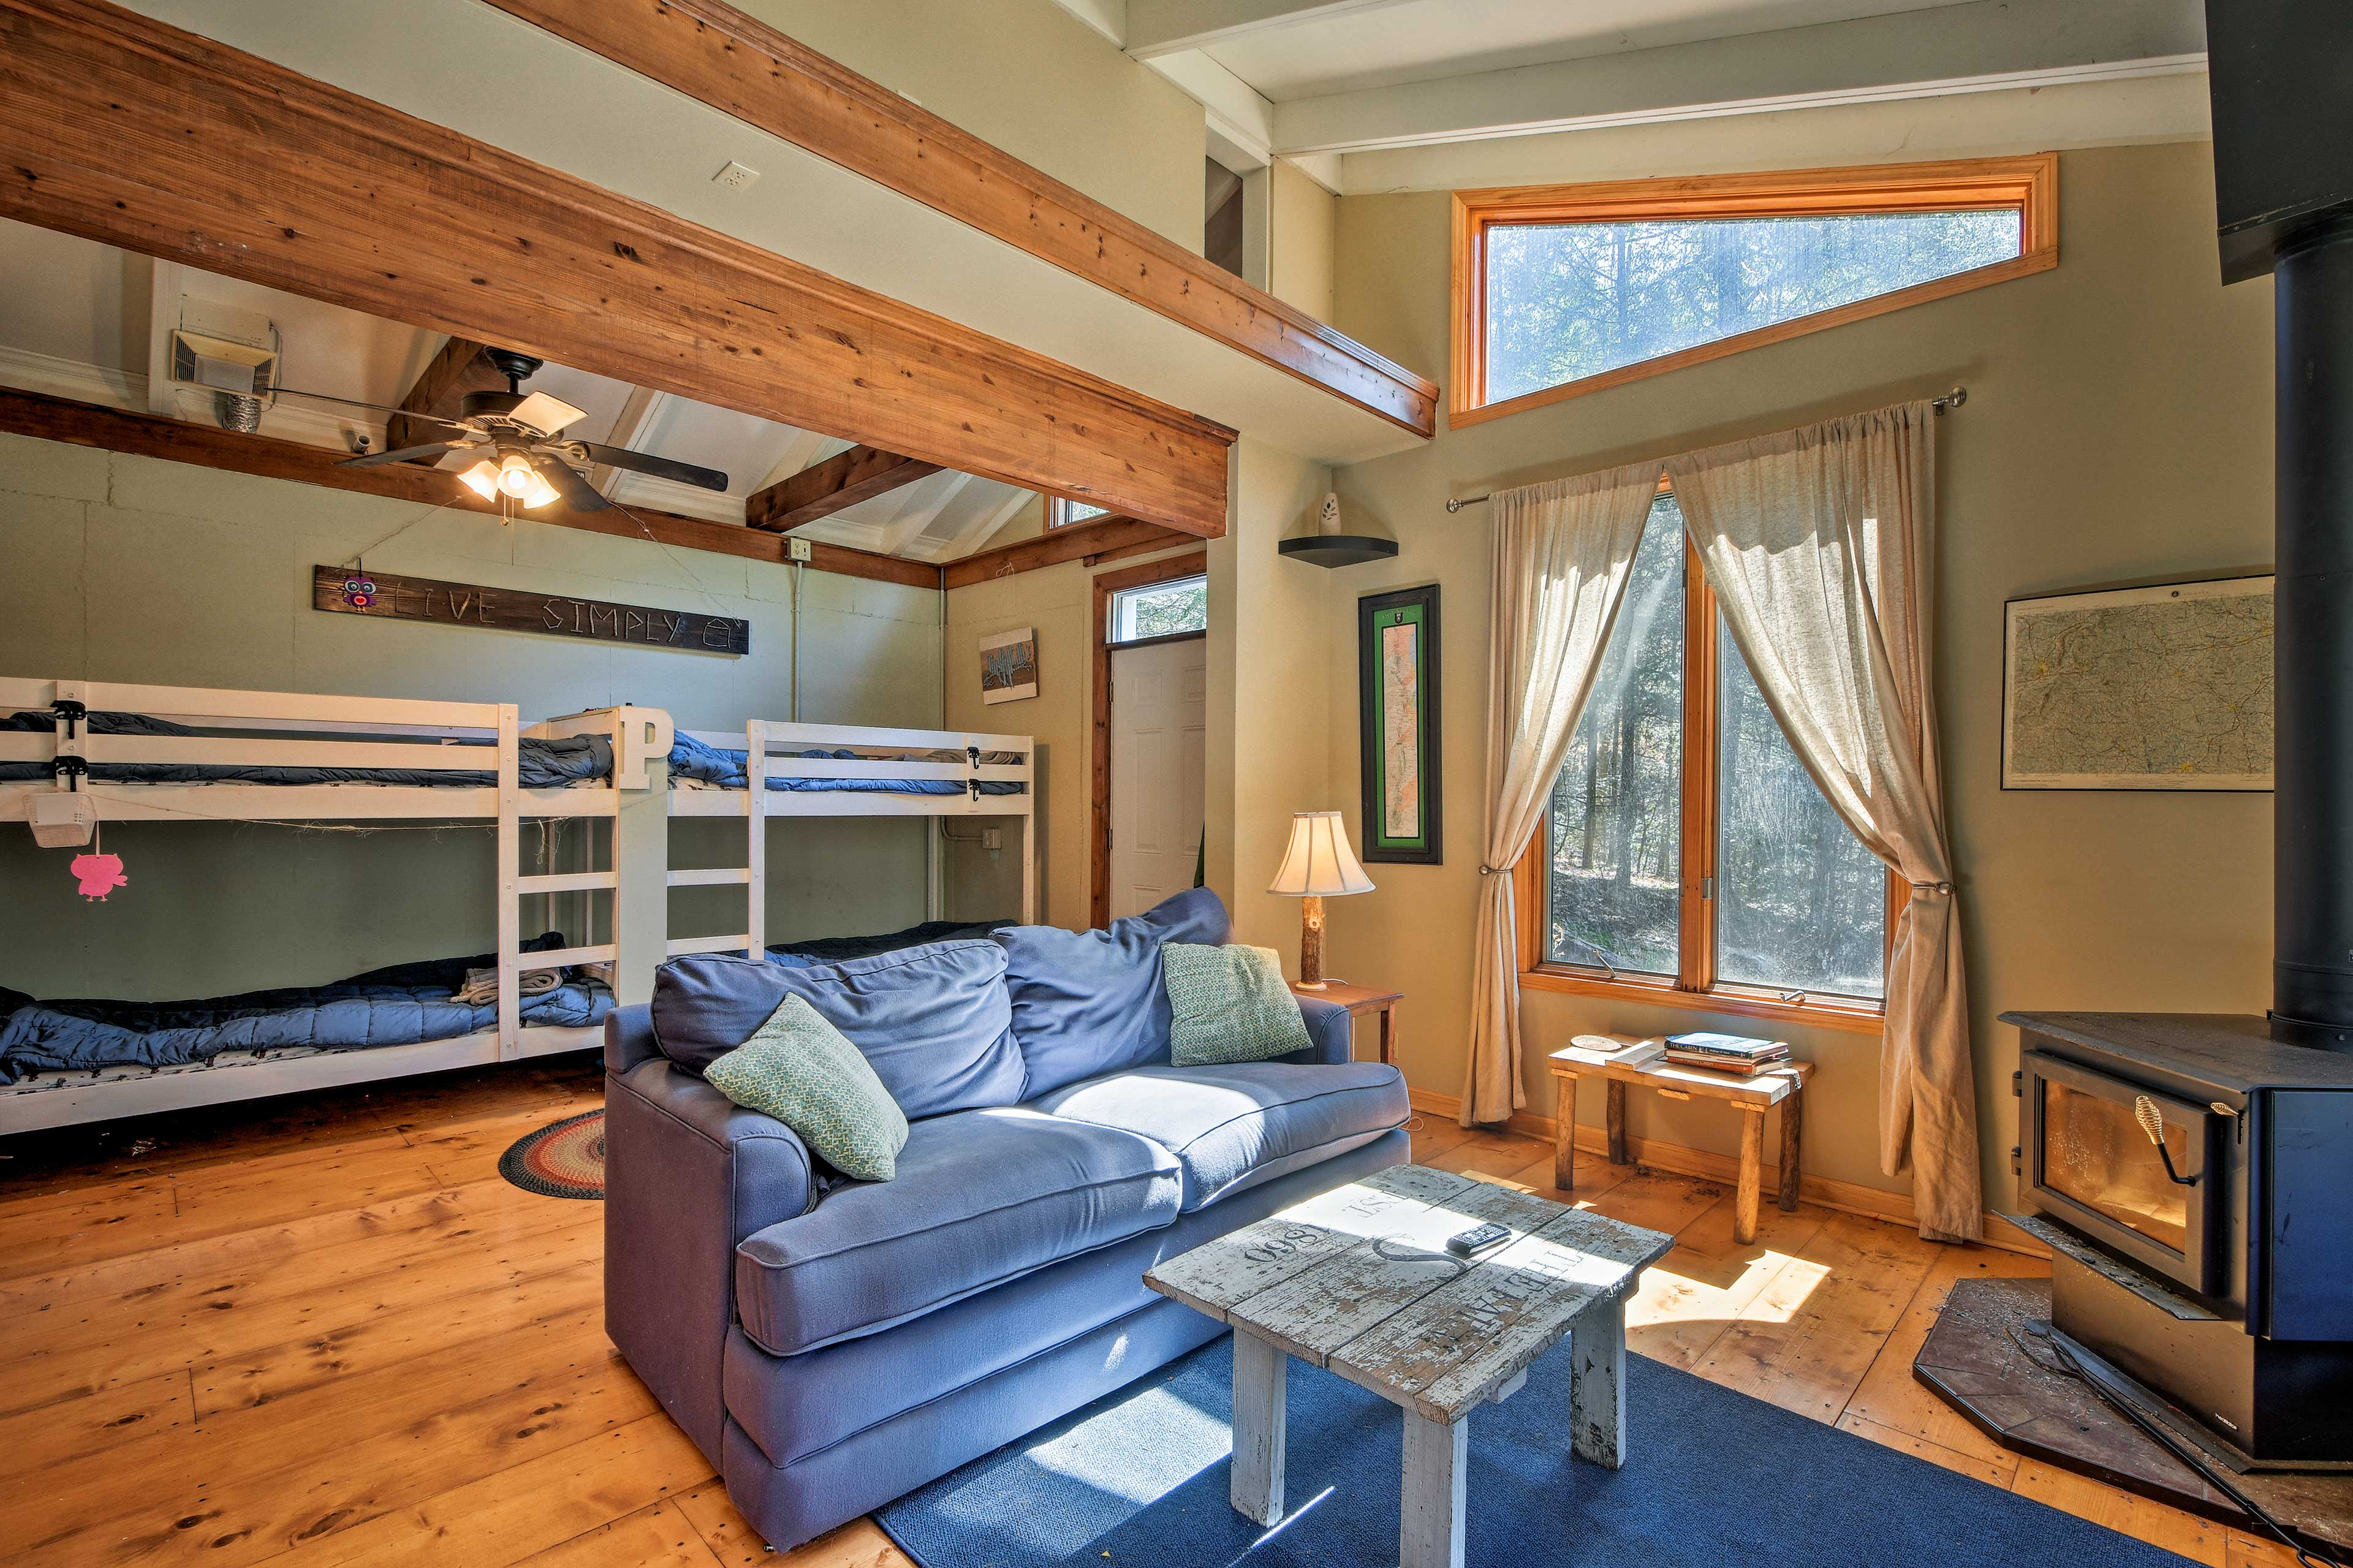 The cabin's open layout allows your entire group to come together on your trip.